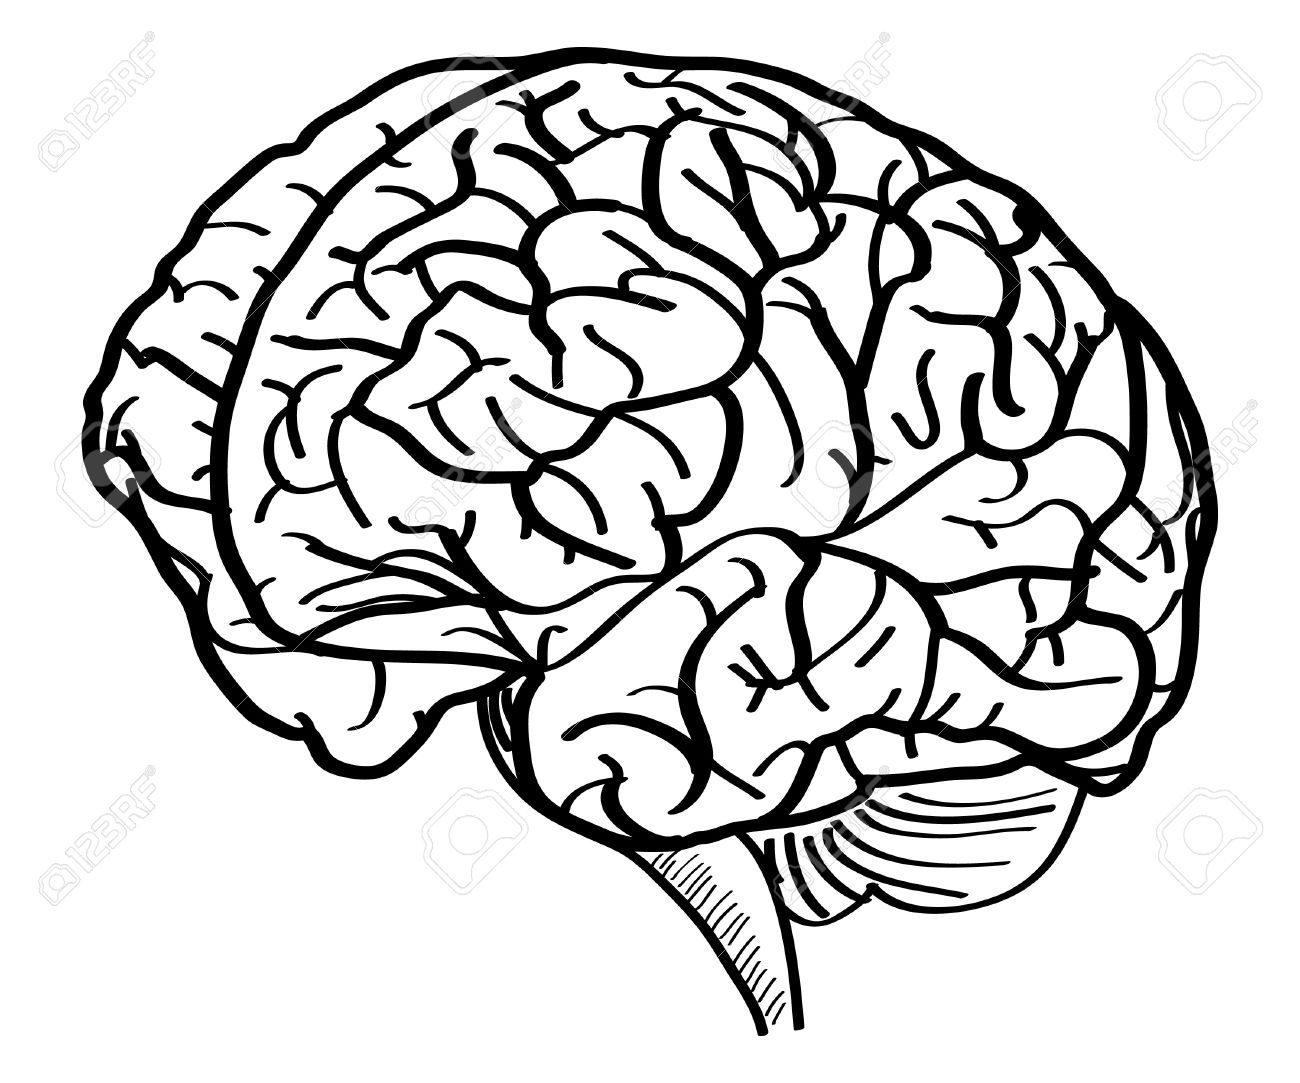 Line Drawing Of Brain At Free For